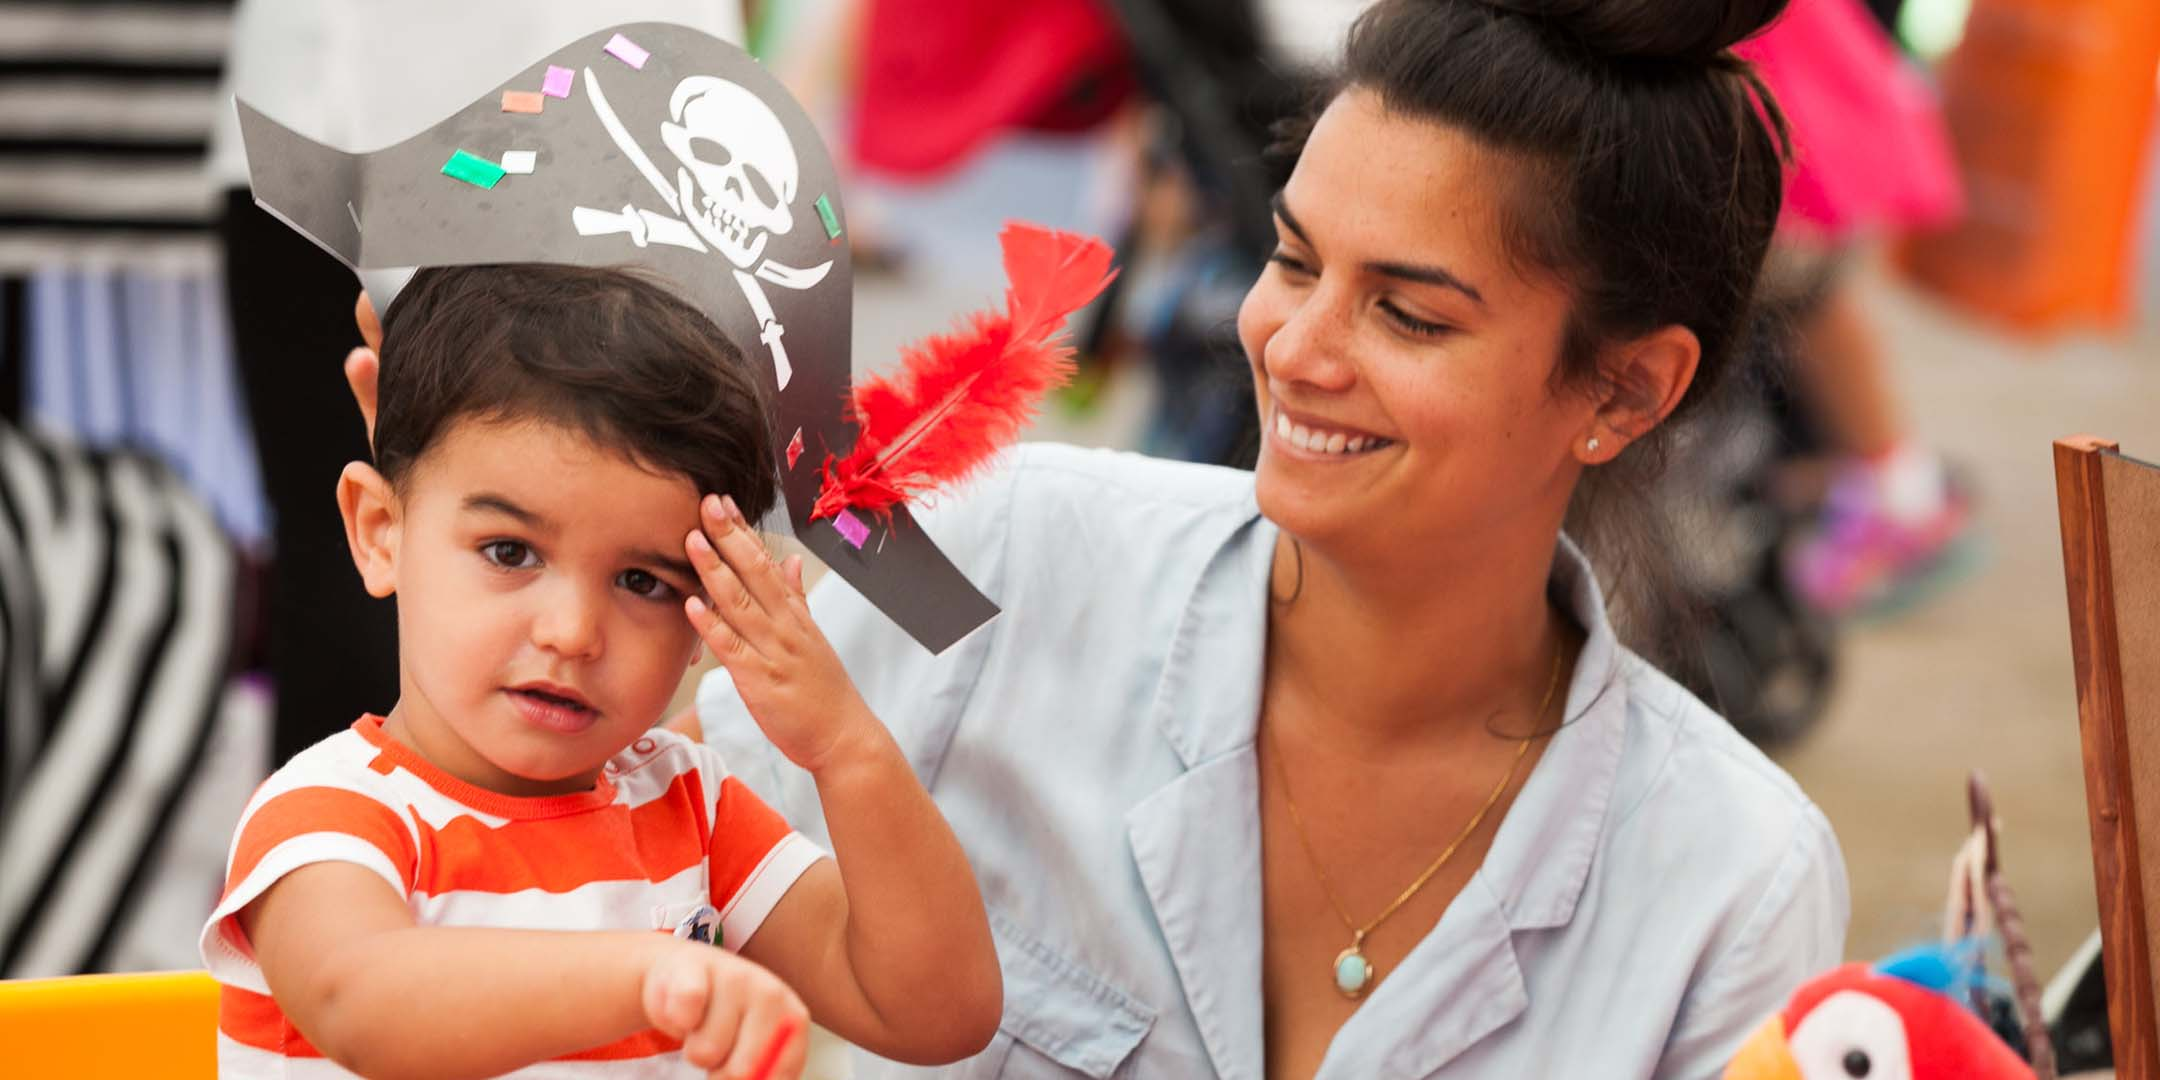 A mother with her young son wearing his craft pirate hat